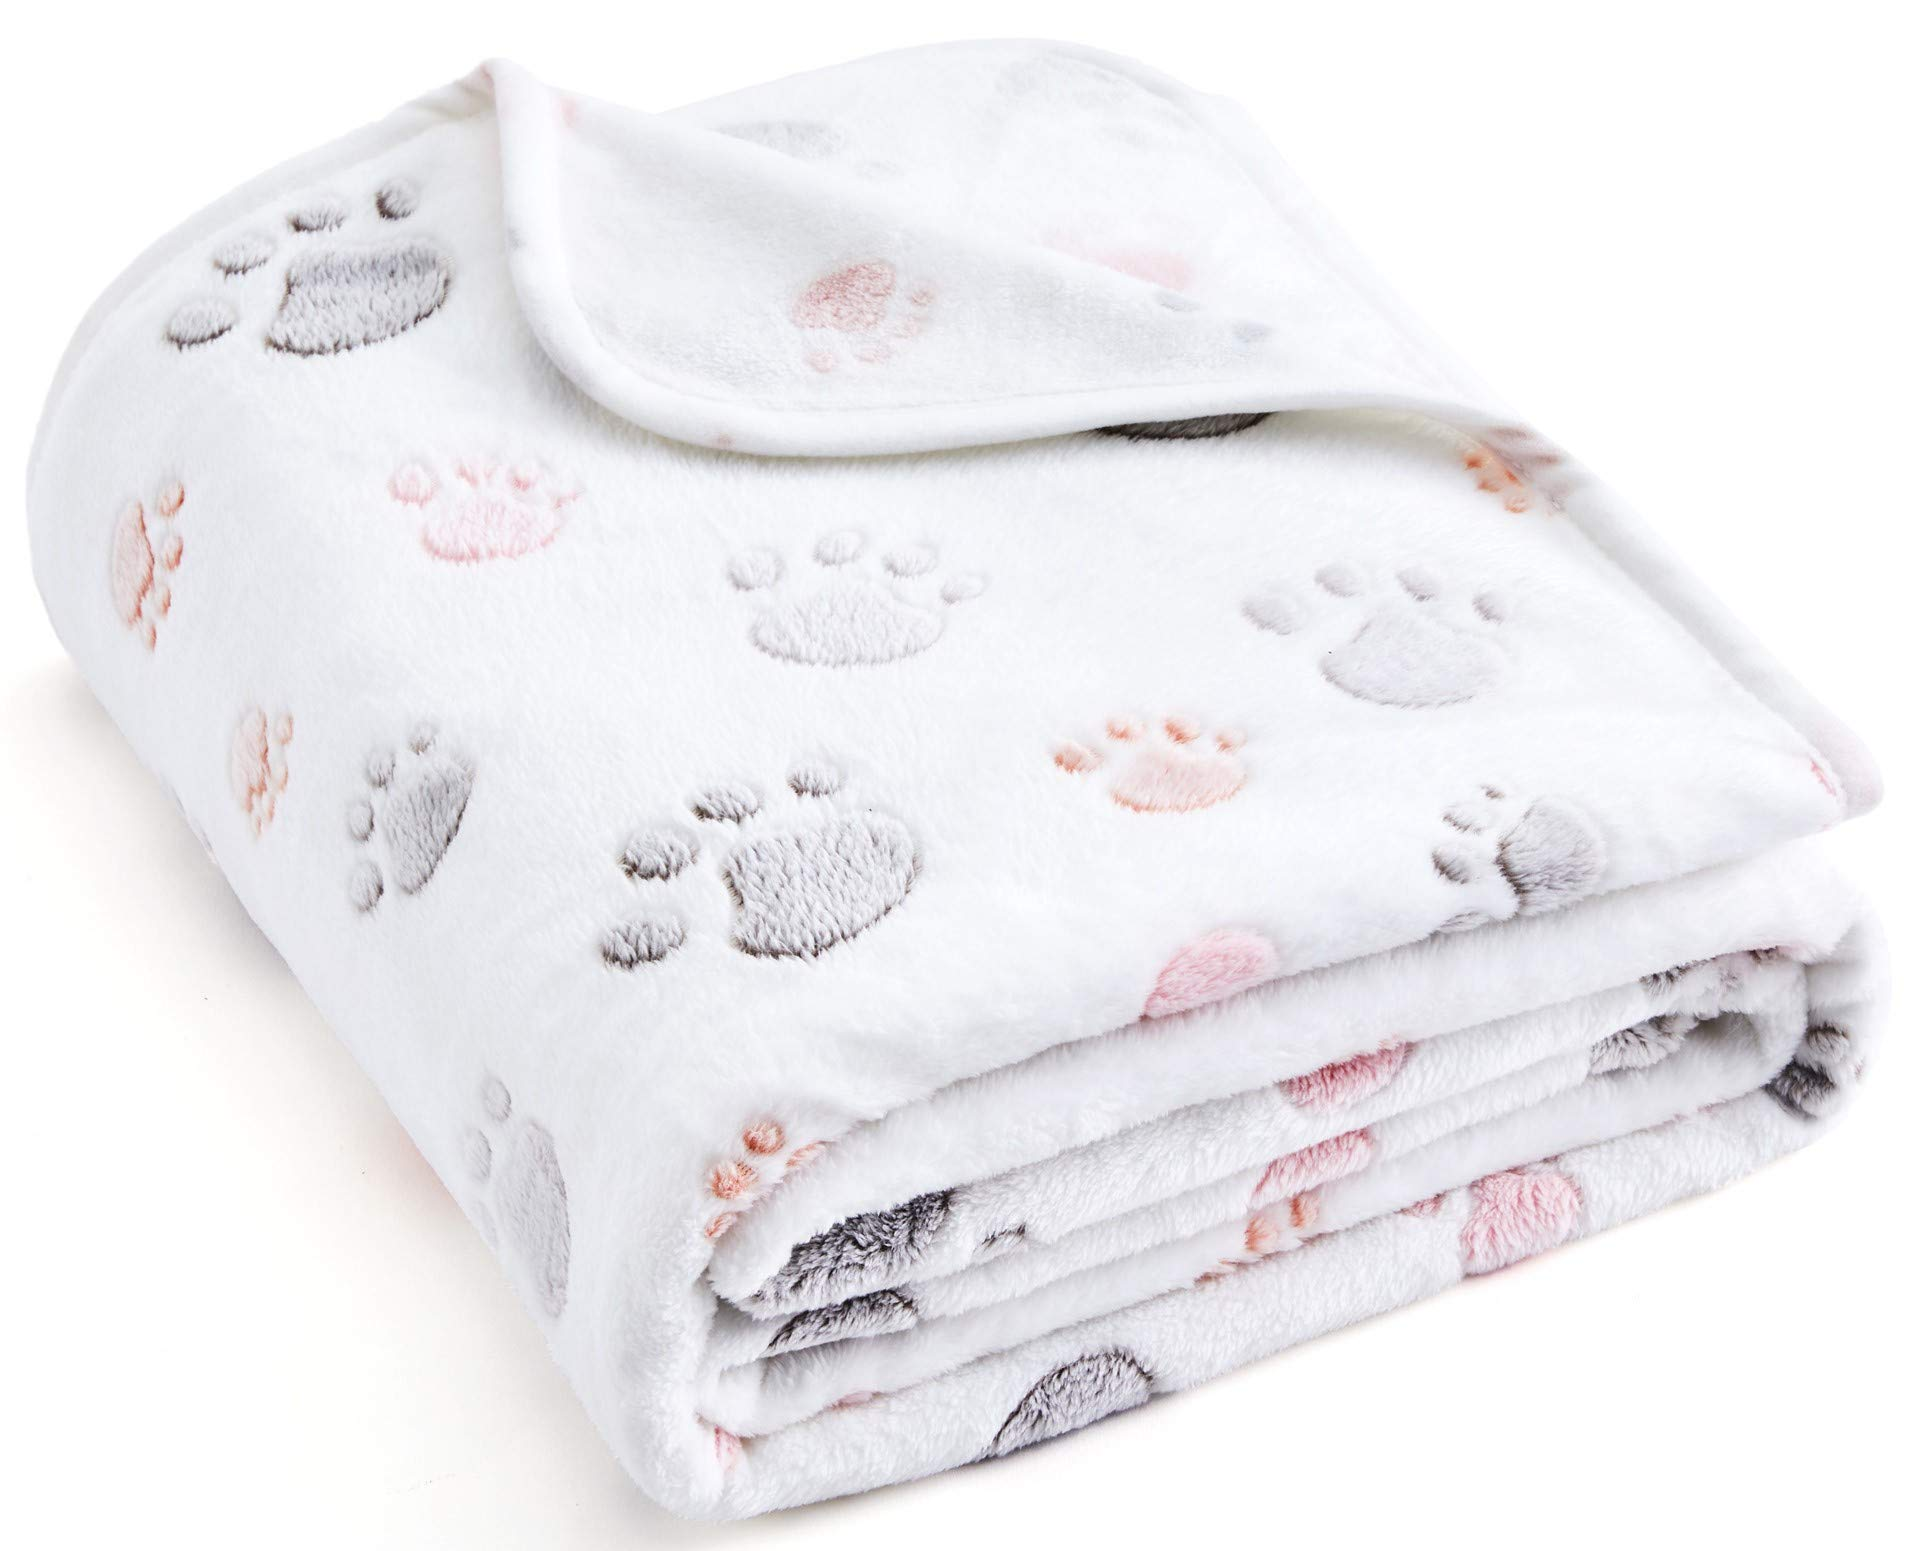 ALLISANDRO 350 GSM-Super Soft and Premium Fuzzy Fleece Pet Dog Blanket, The Cute Print Design Washable Fluffy Blanket for Puppy Cat Kitten Indoor or Outdoor, White and Grey